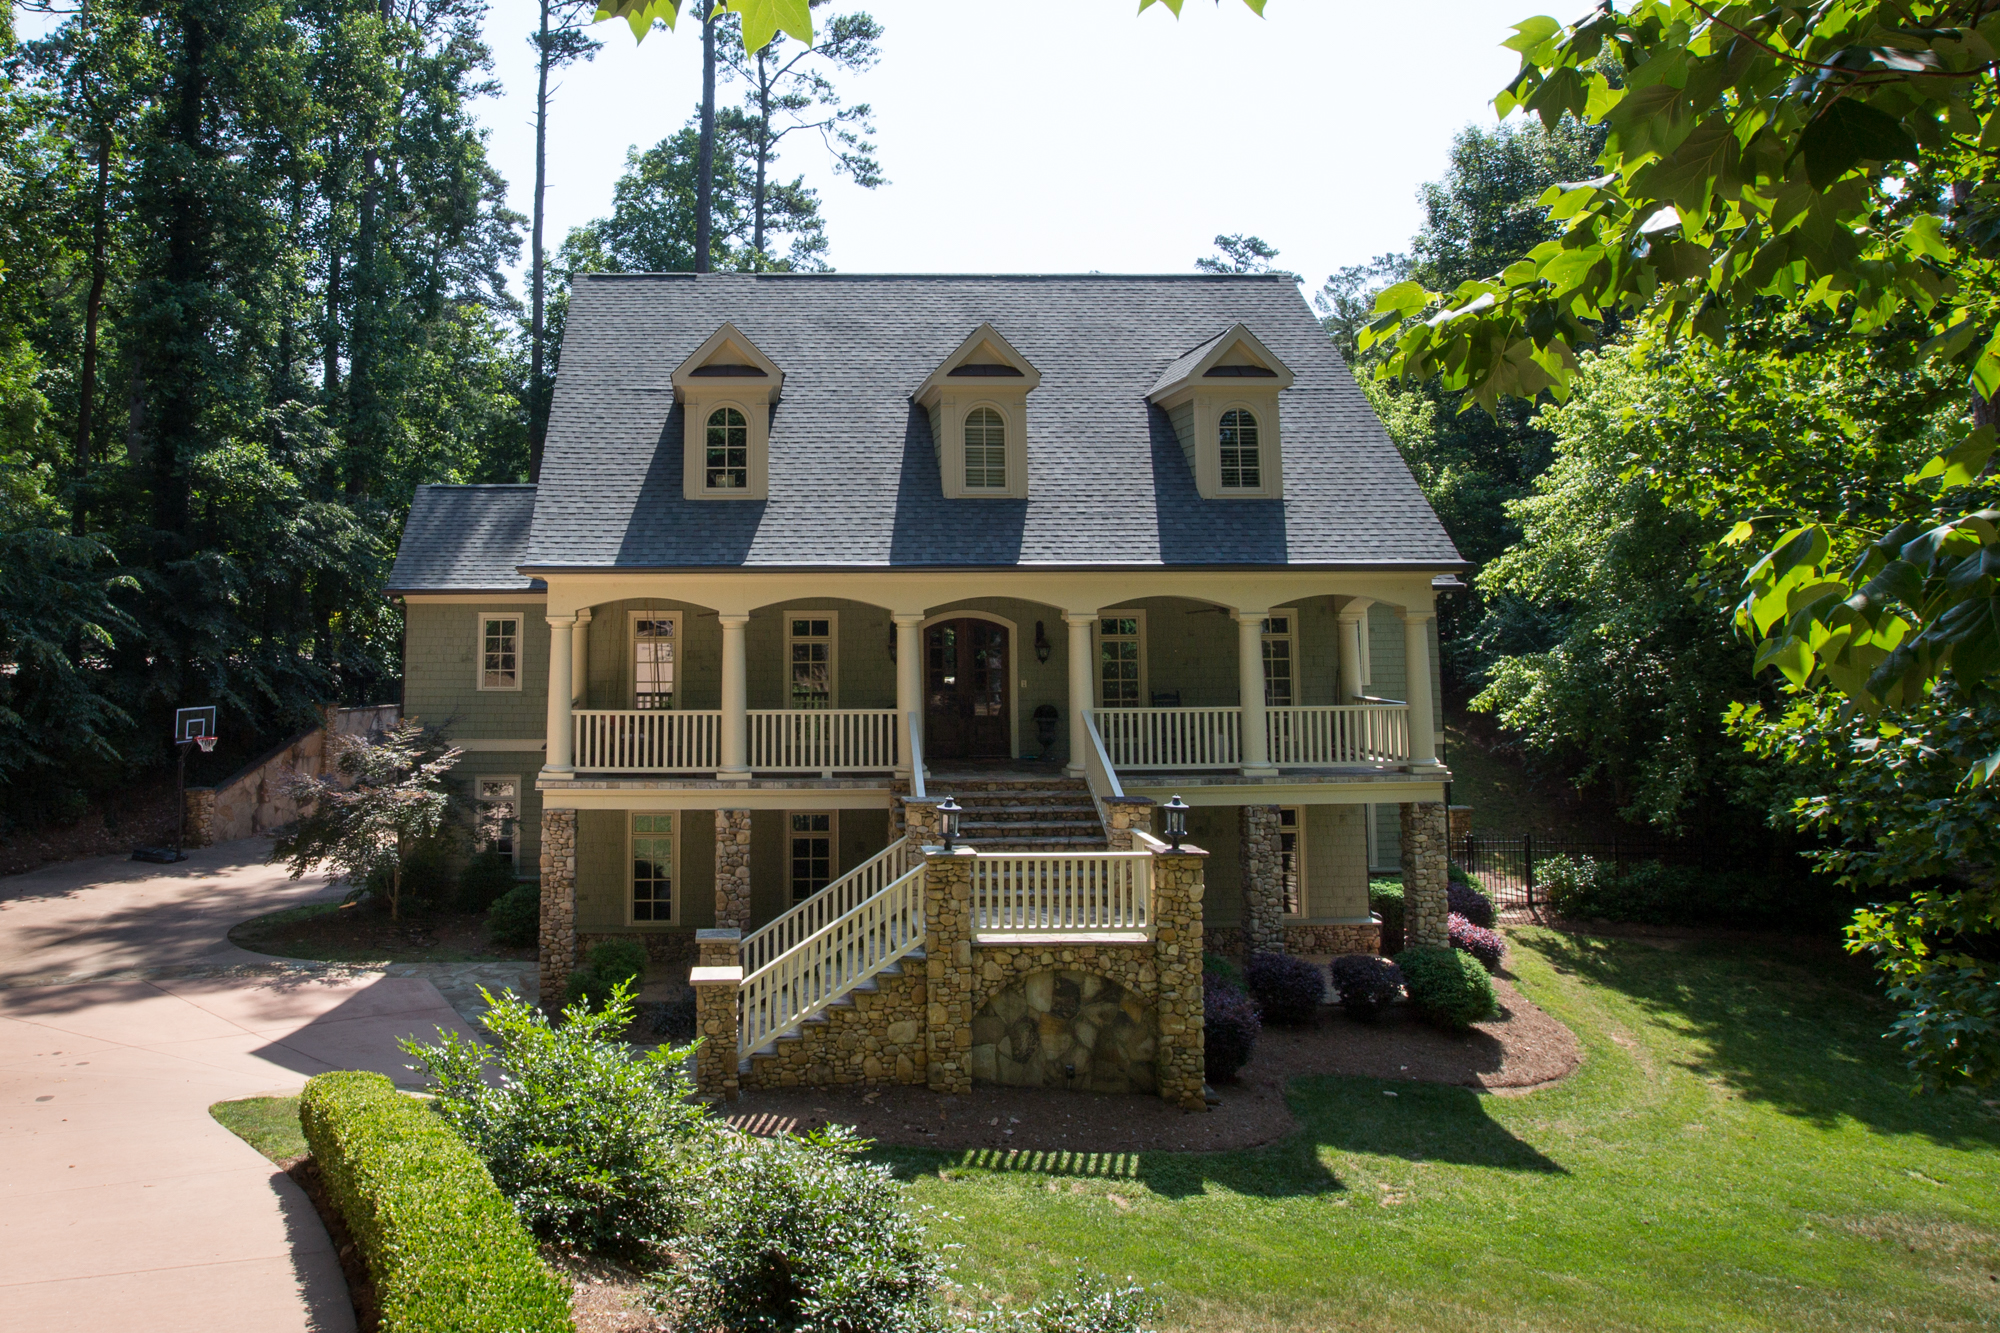 Single Family Home for Sale at Fabulous Custom Property 4227 Peachtree Dunwoody Road NE Brookhaven, Atlanta, Georgia, 30342 United States